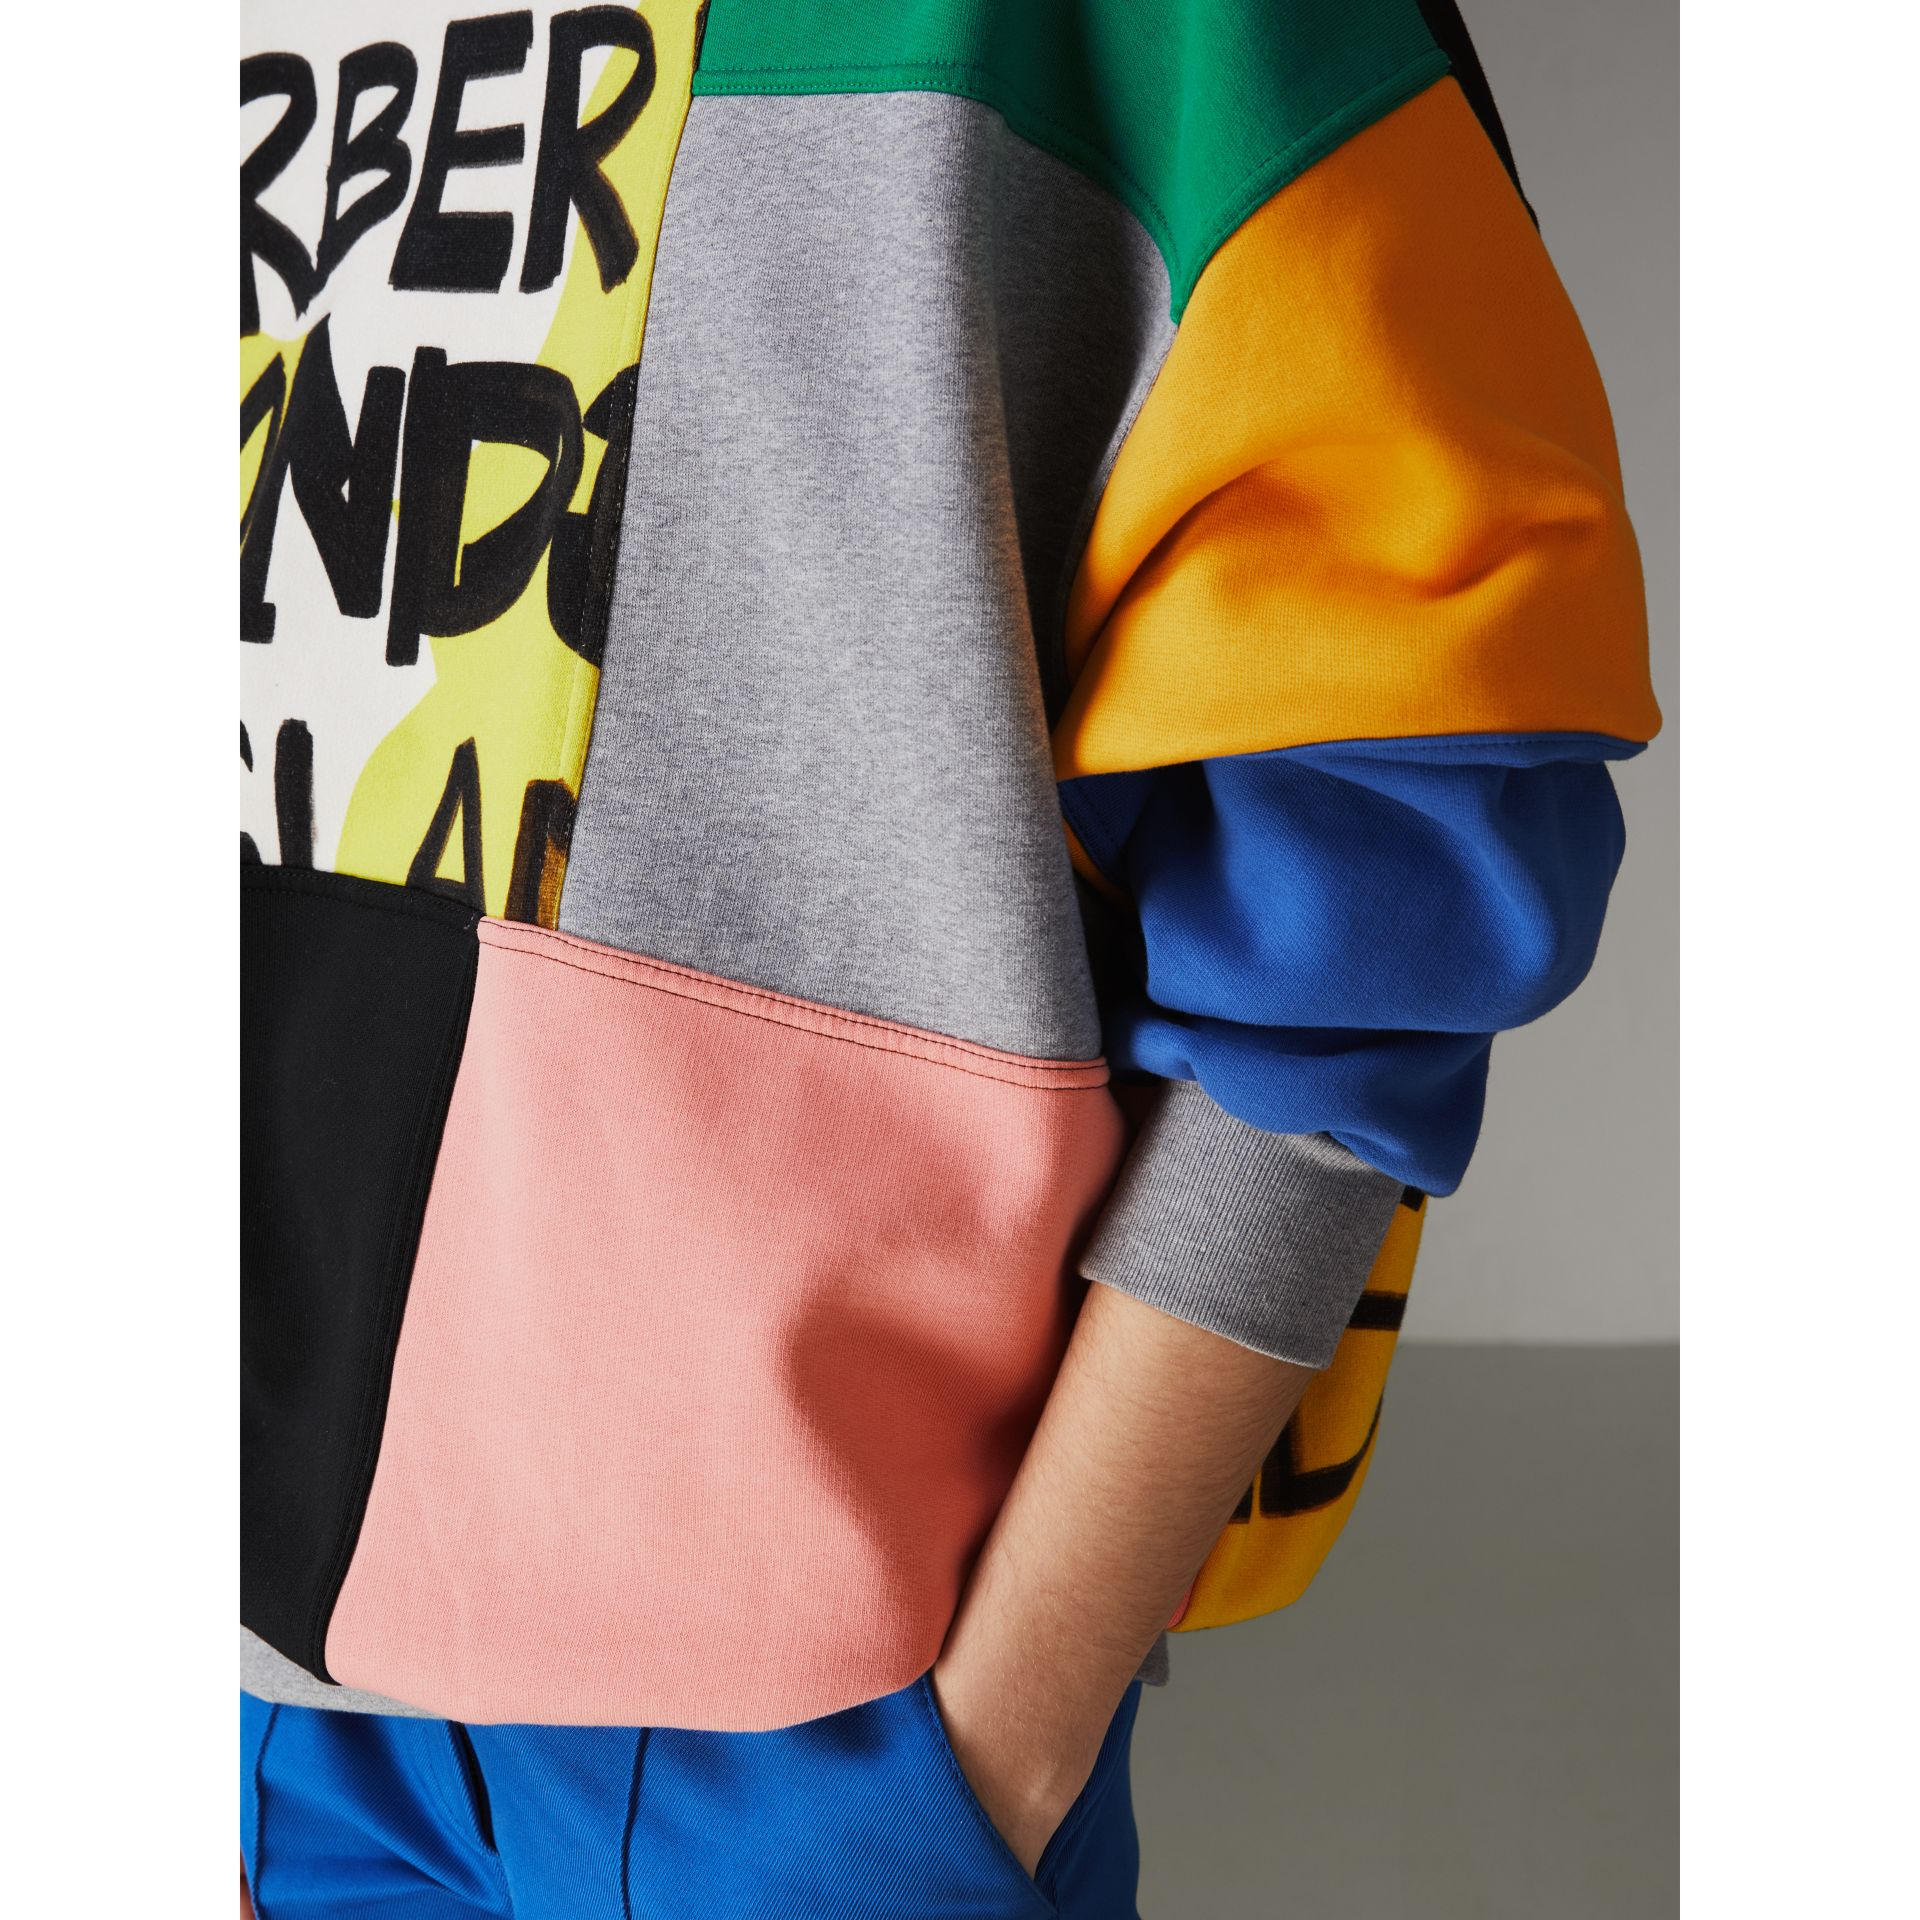 Graffiti Print Panel Cotton Blend Sweatshirt in Multicolour - Women | Burberry Australia - gallery image 1